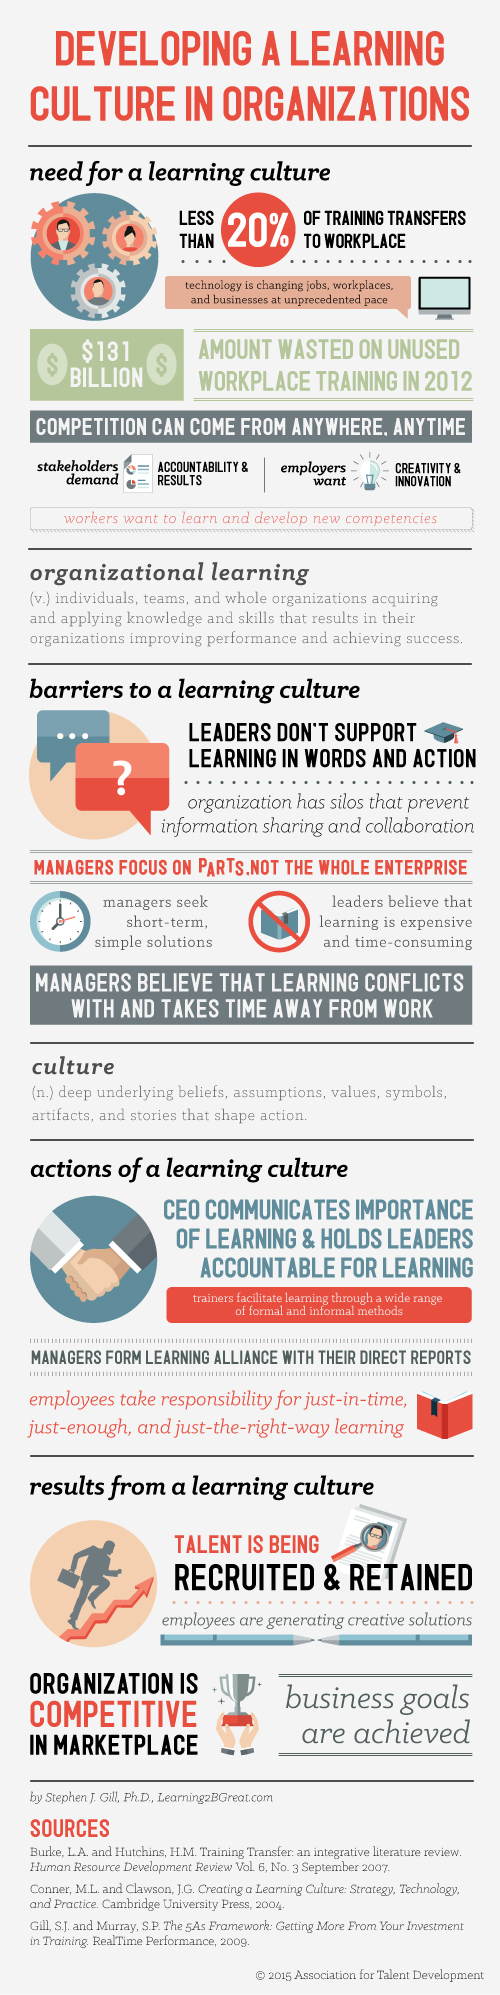 Learning culture infographic